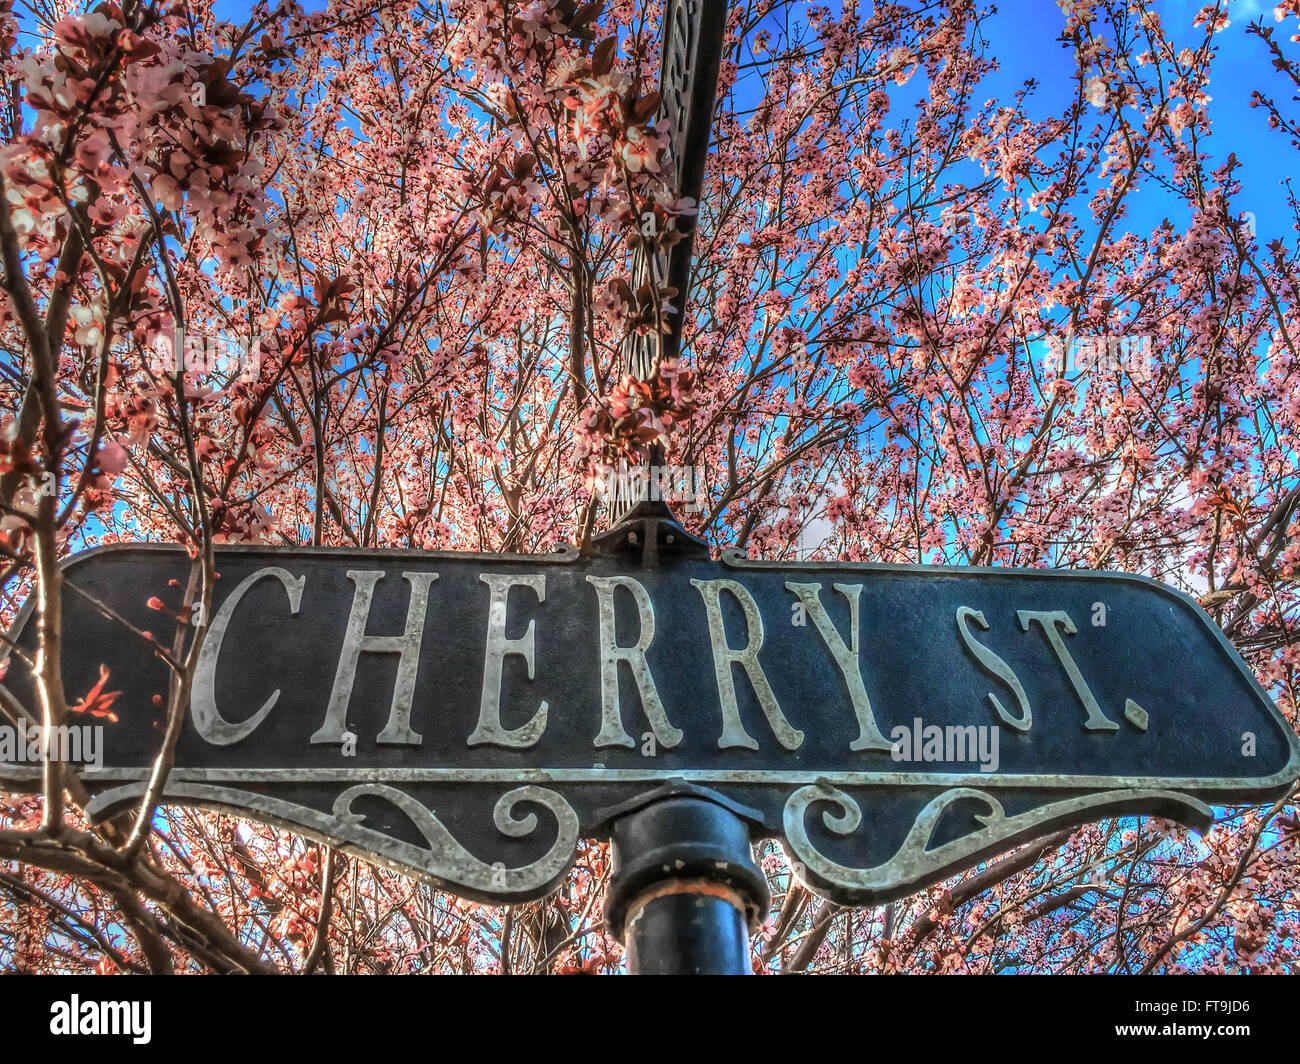 Spring weather - cherry blossoms decorate a Cherry Street signpost in Media, Pennsylvania, USA - Stock Image